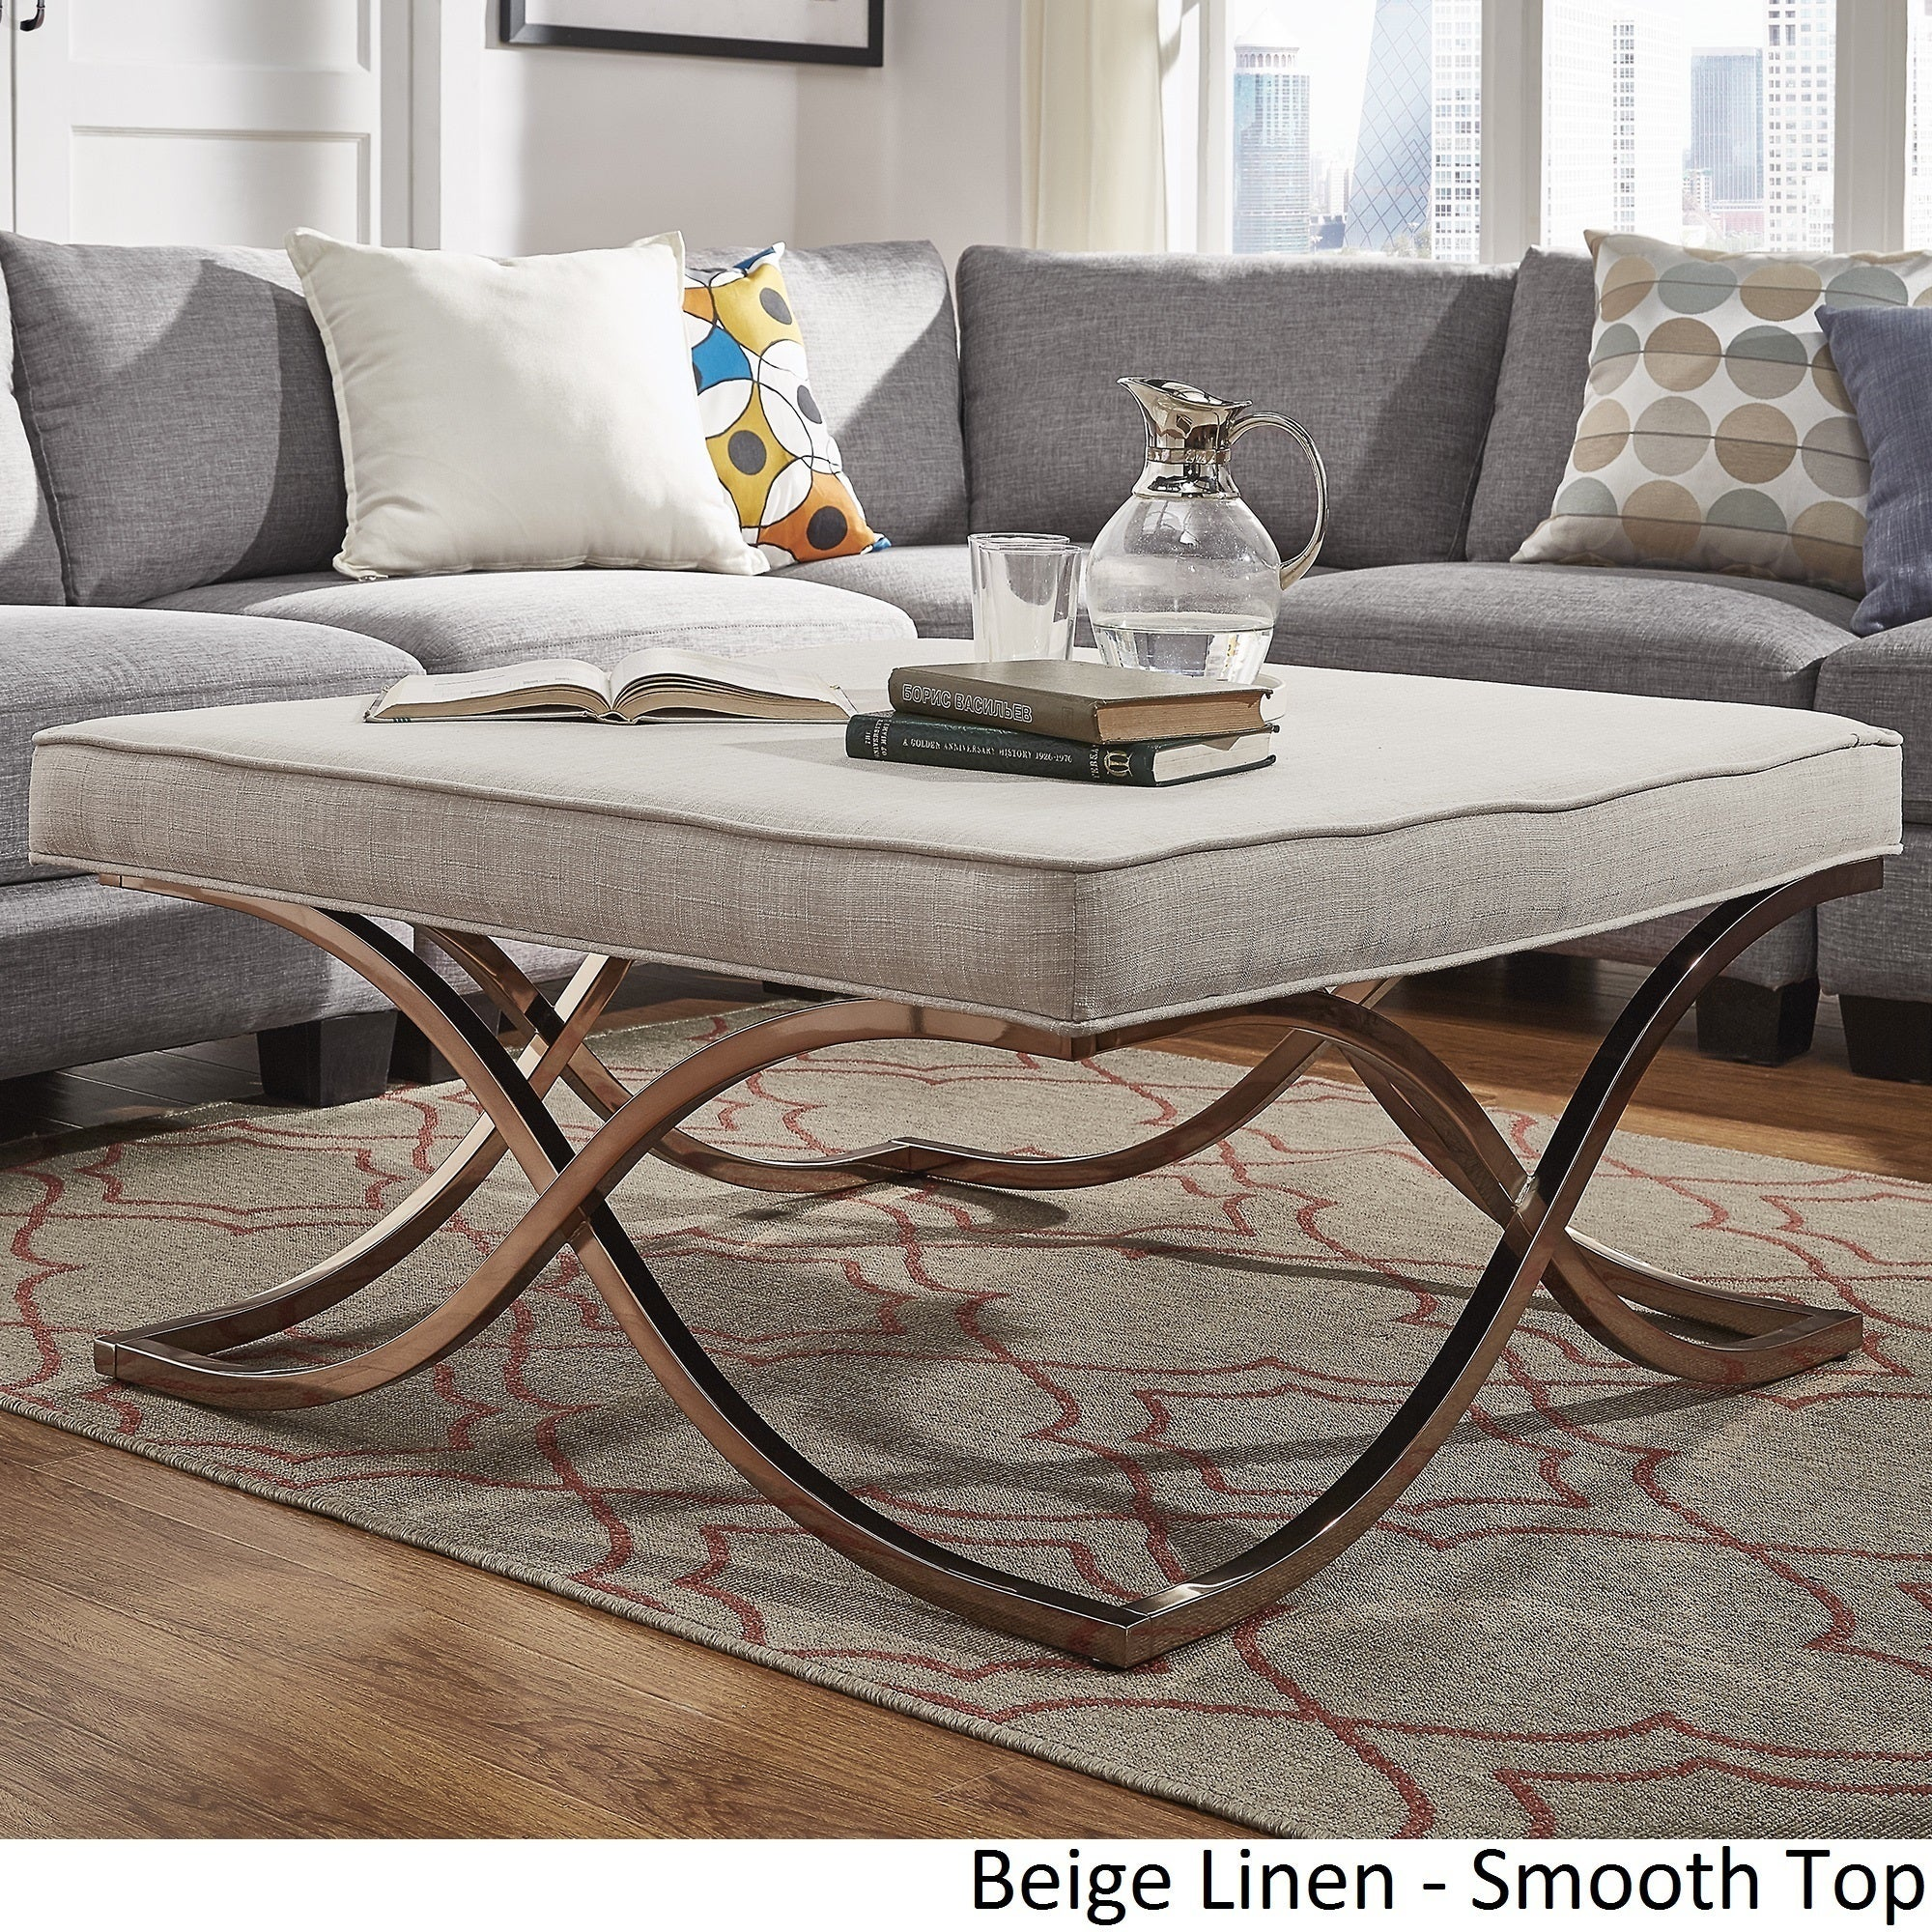 Solene X Base Square Ottoman Coffee Table Champagne Gold by